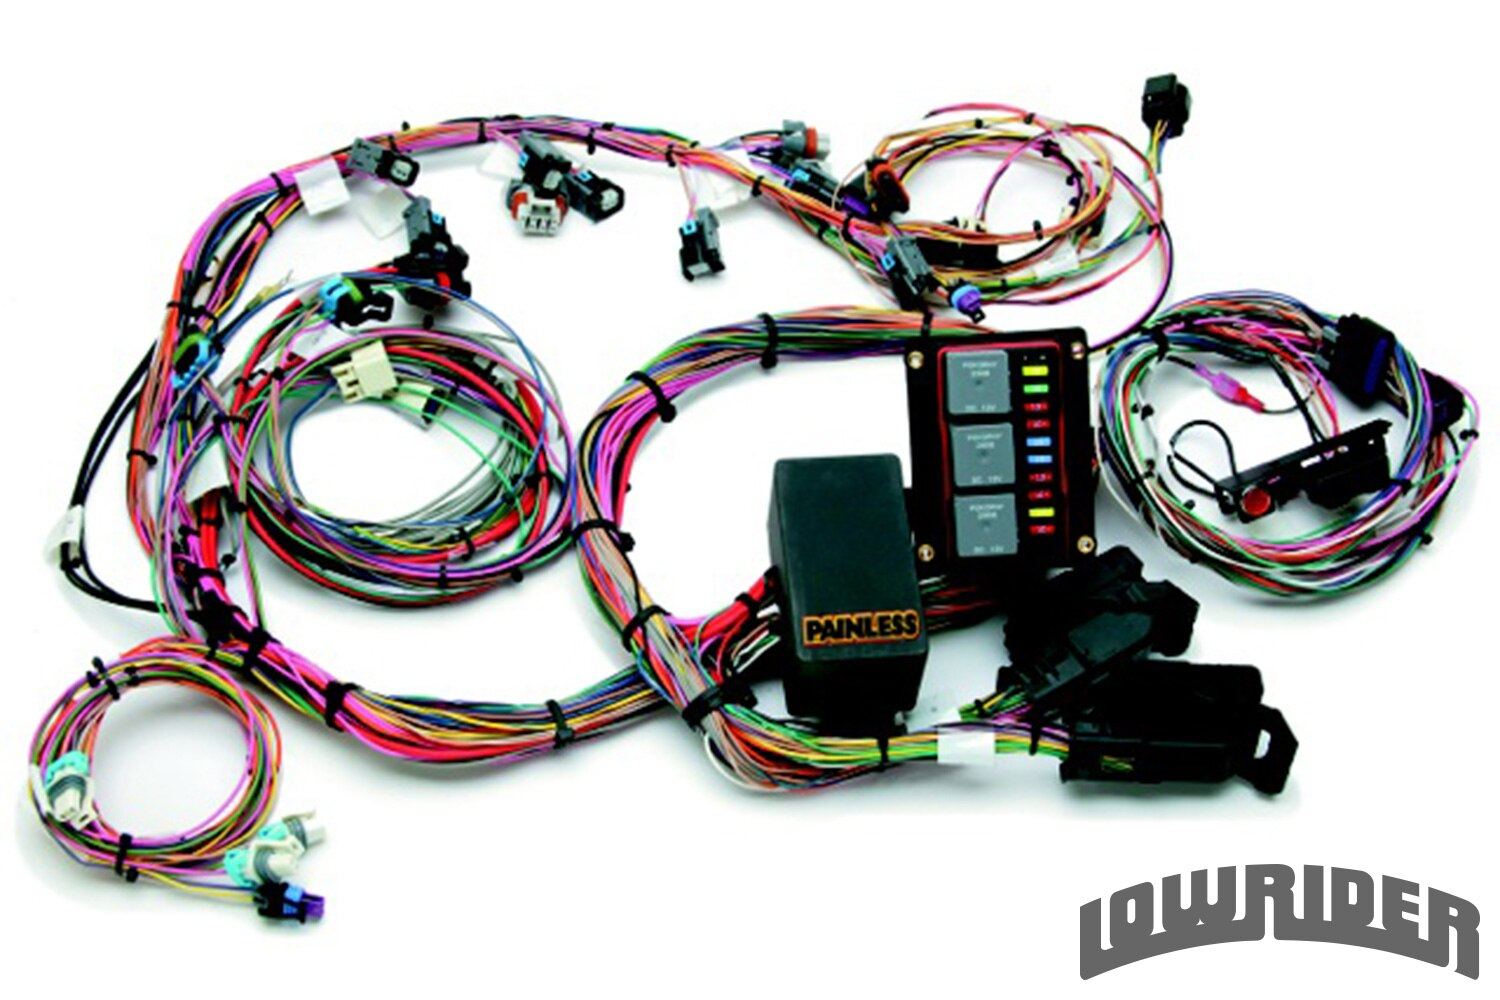 lowrider new products march 2014 painless performance LS harness lowrider new products march 2014 lowrider magazine painless ls wiring harness at honlapkeszites.co